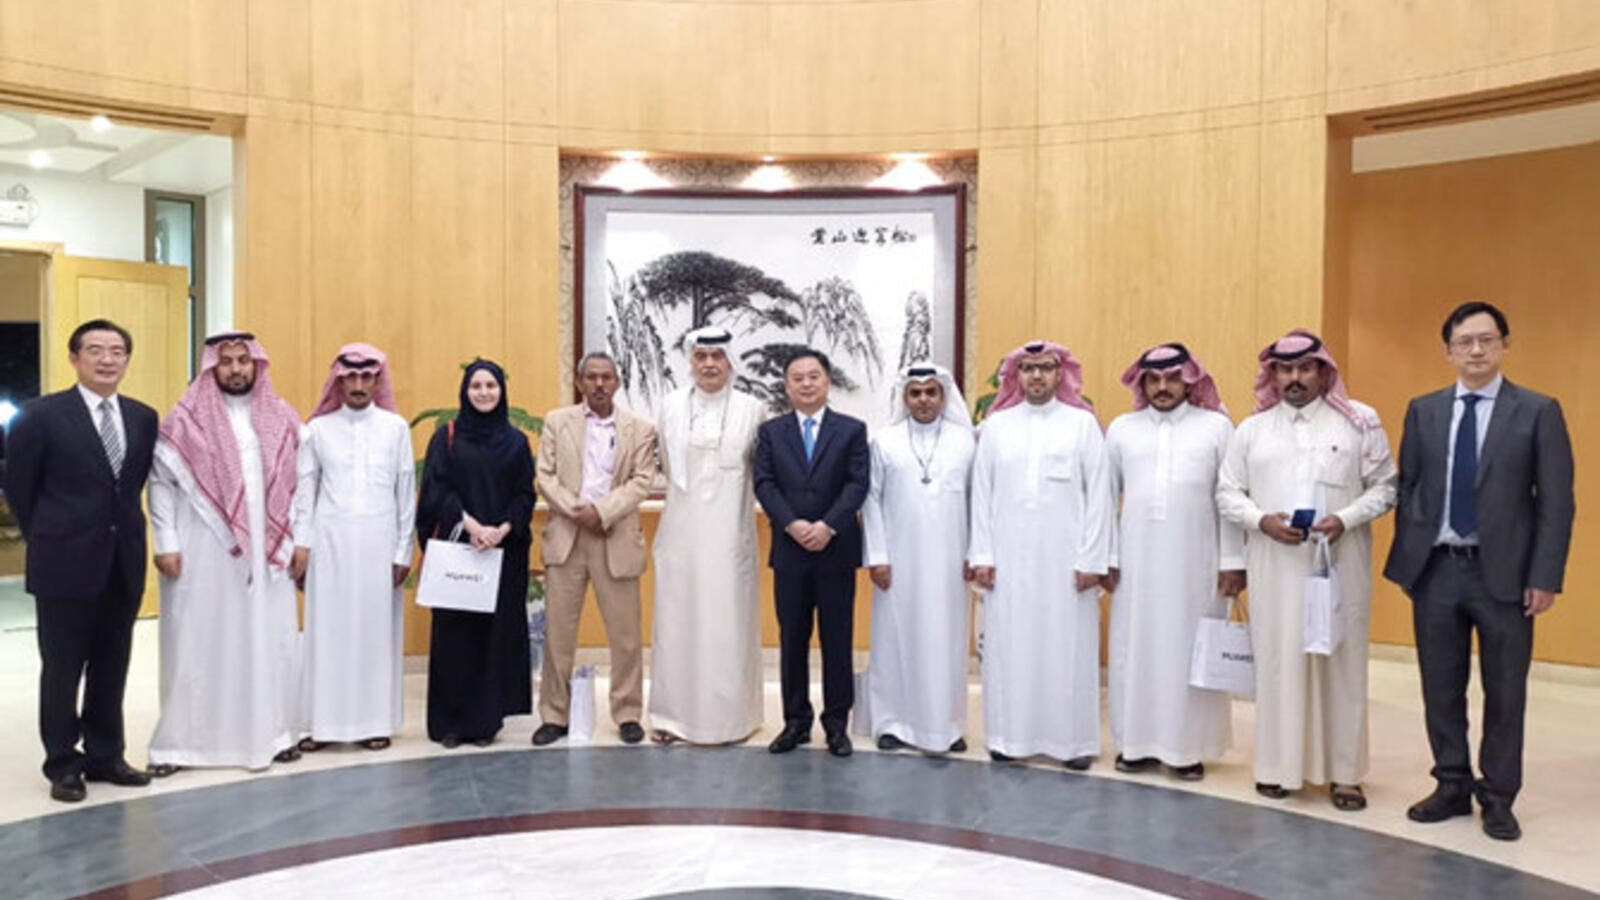 Chinese Ambassador Chen Weiqing hosts iftar in Riyadh.